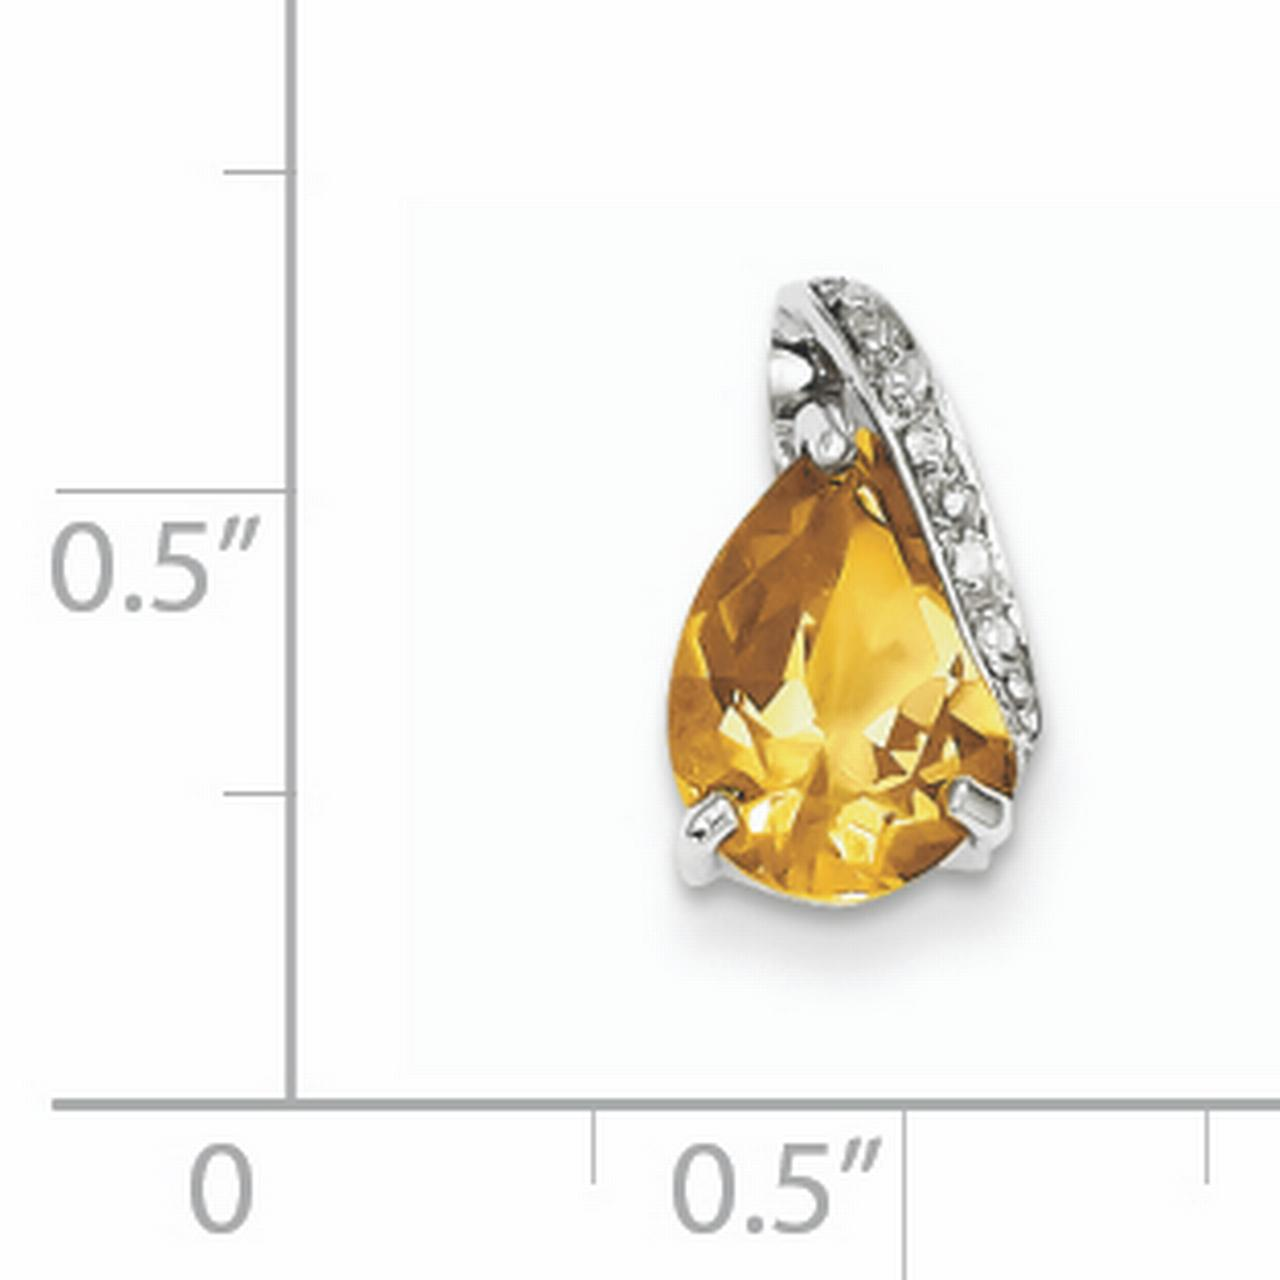 925 Sterling Silver Rhodium Pear Citrine Pendant - image 1 of 2